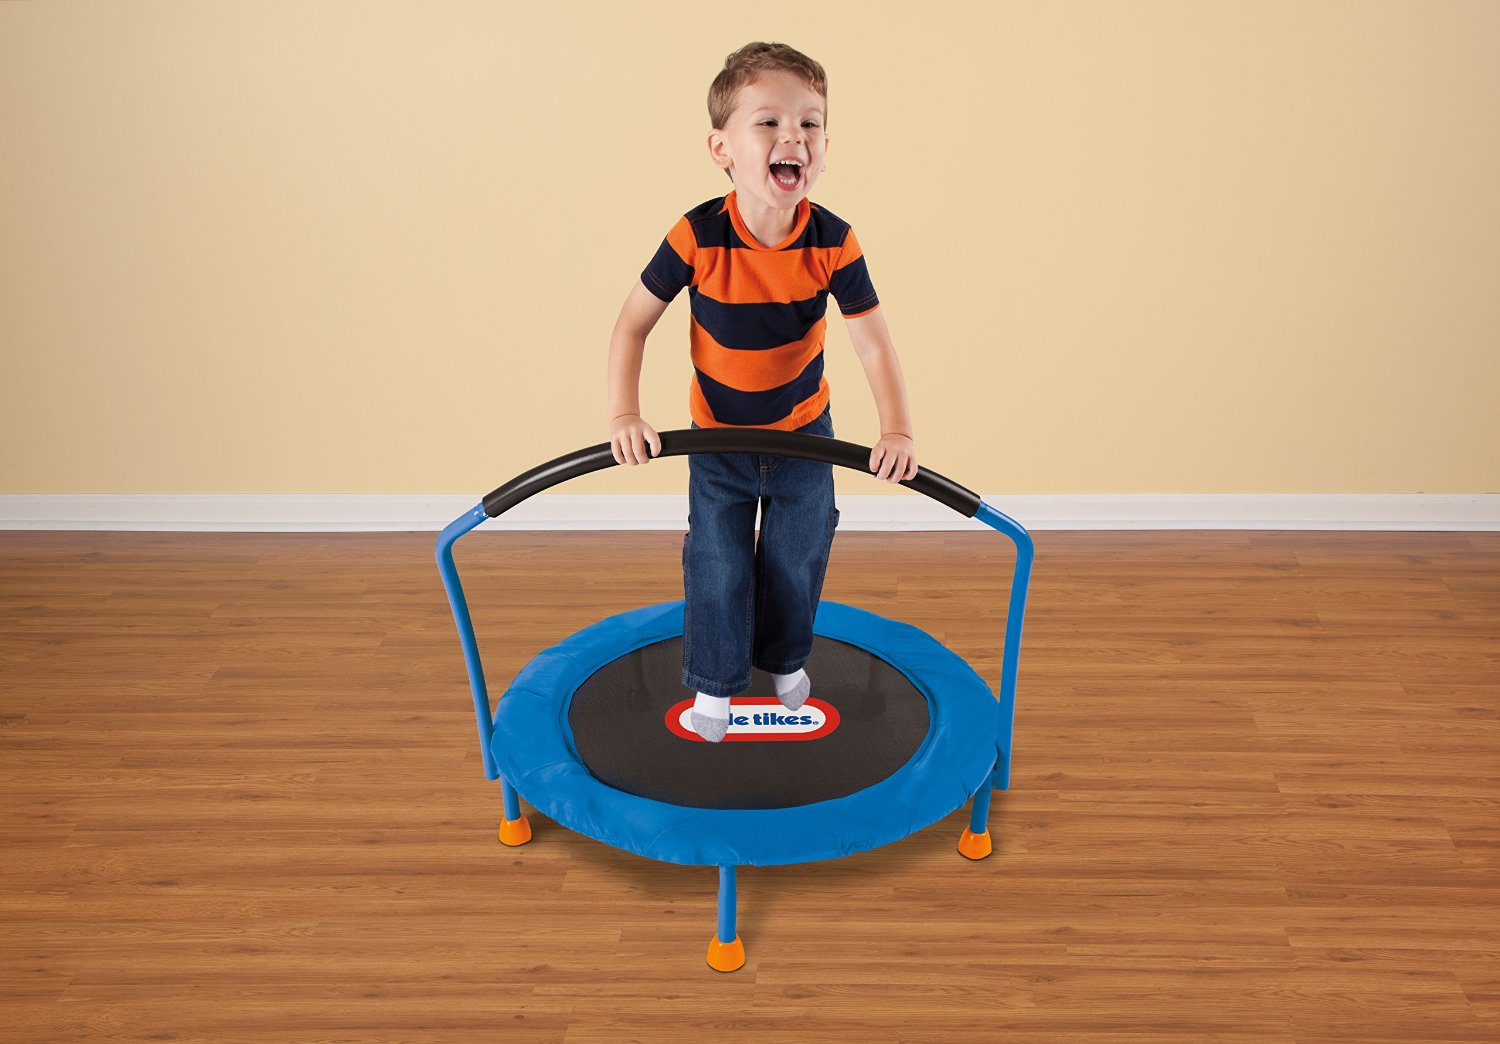 Great Toys For 3 Year Old Boys : Top toys for year old boys the absolute best